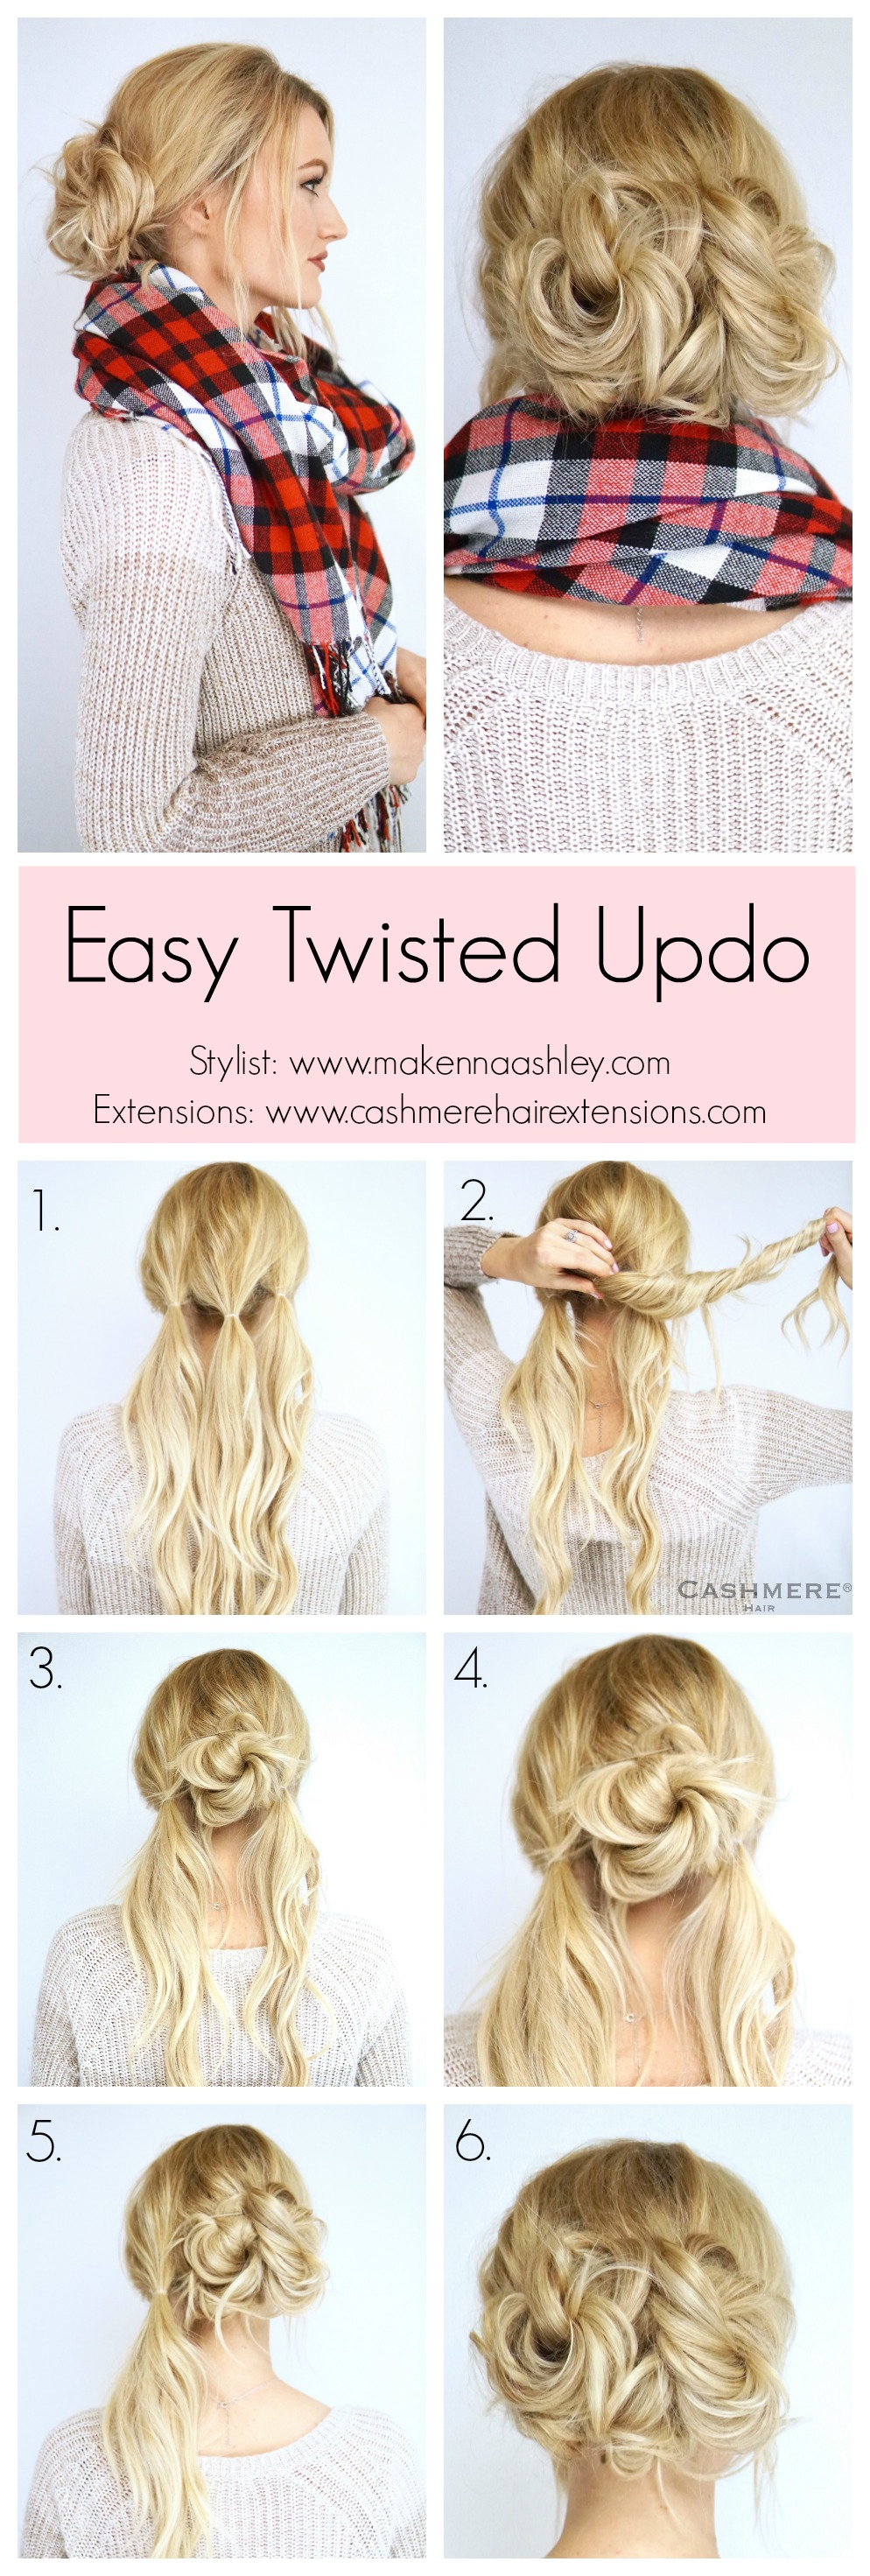 easy-twisted-undo-2